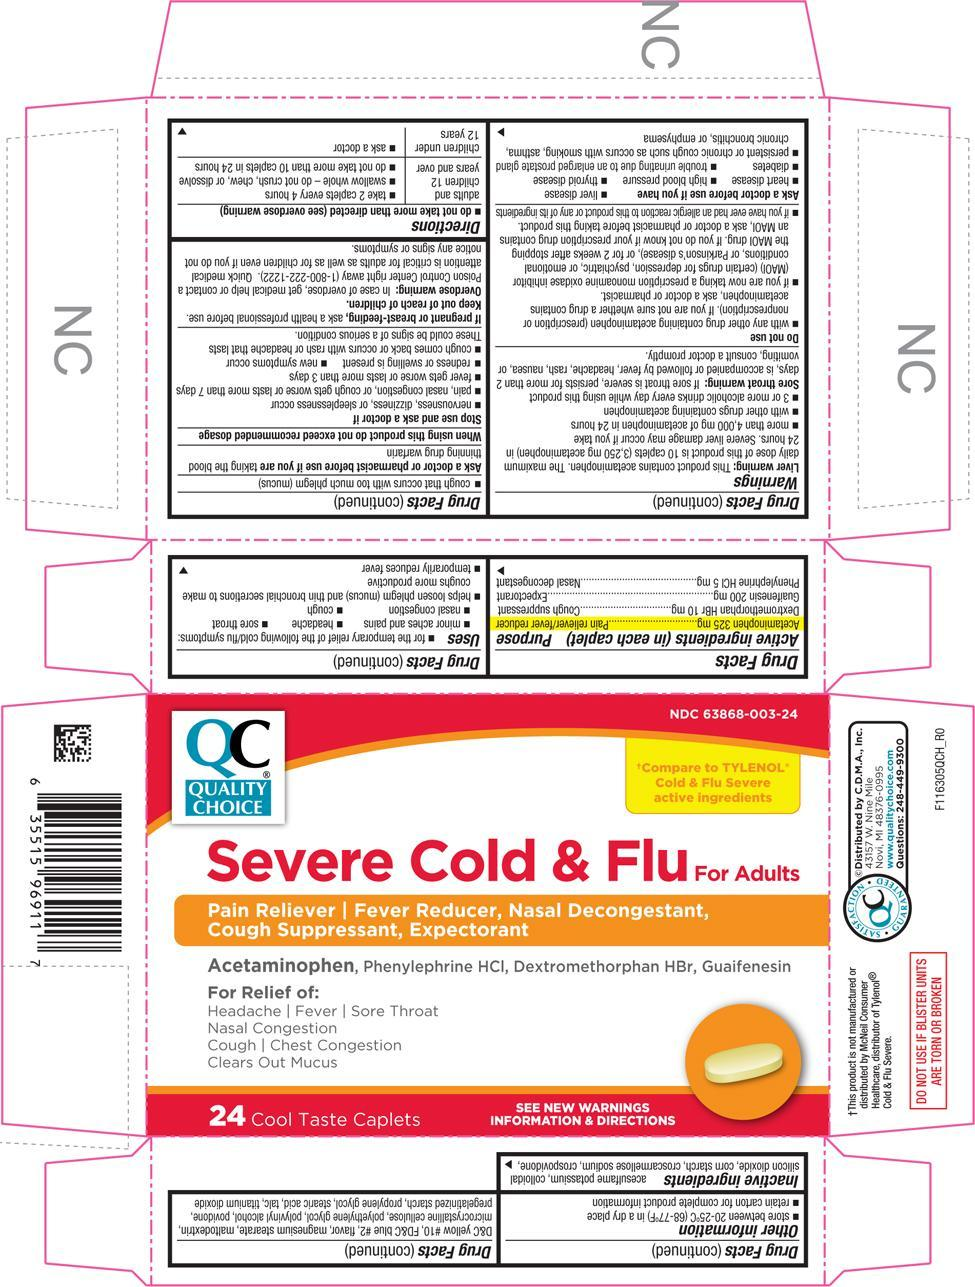 Severe Cold And Flu (Acetaminophen, Dextromethorphan Hydrobromide, Guaifenesin, And Phenylephrine Hydrochloride) Tablet, Coated [Chain Drug Marketing Association]